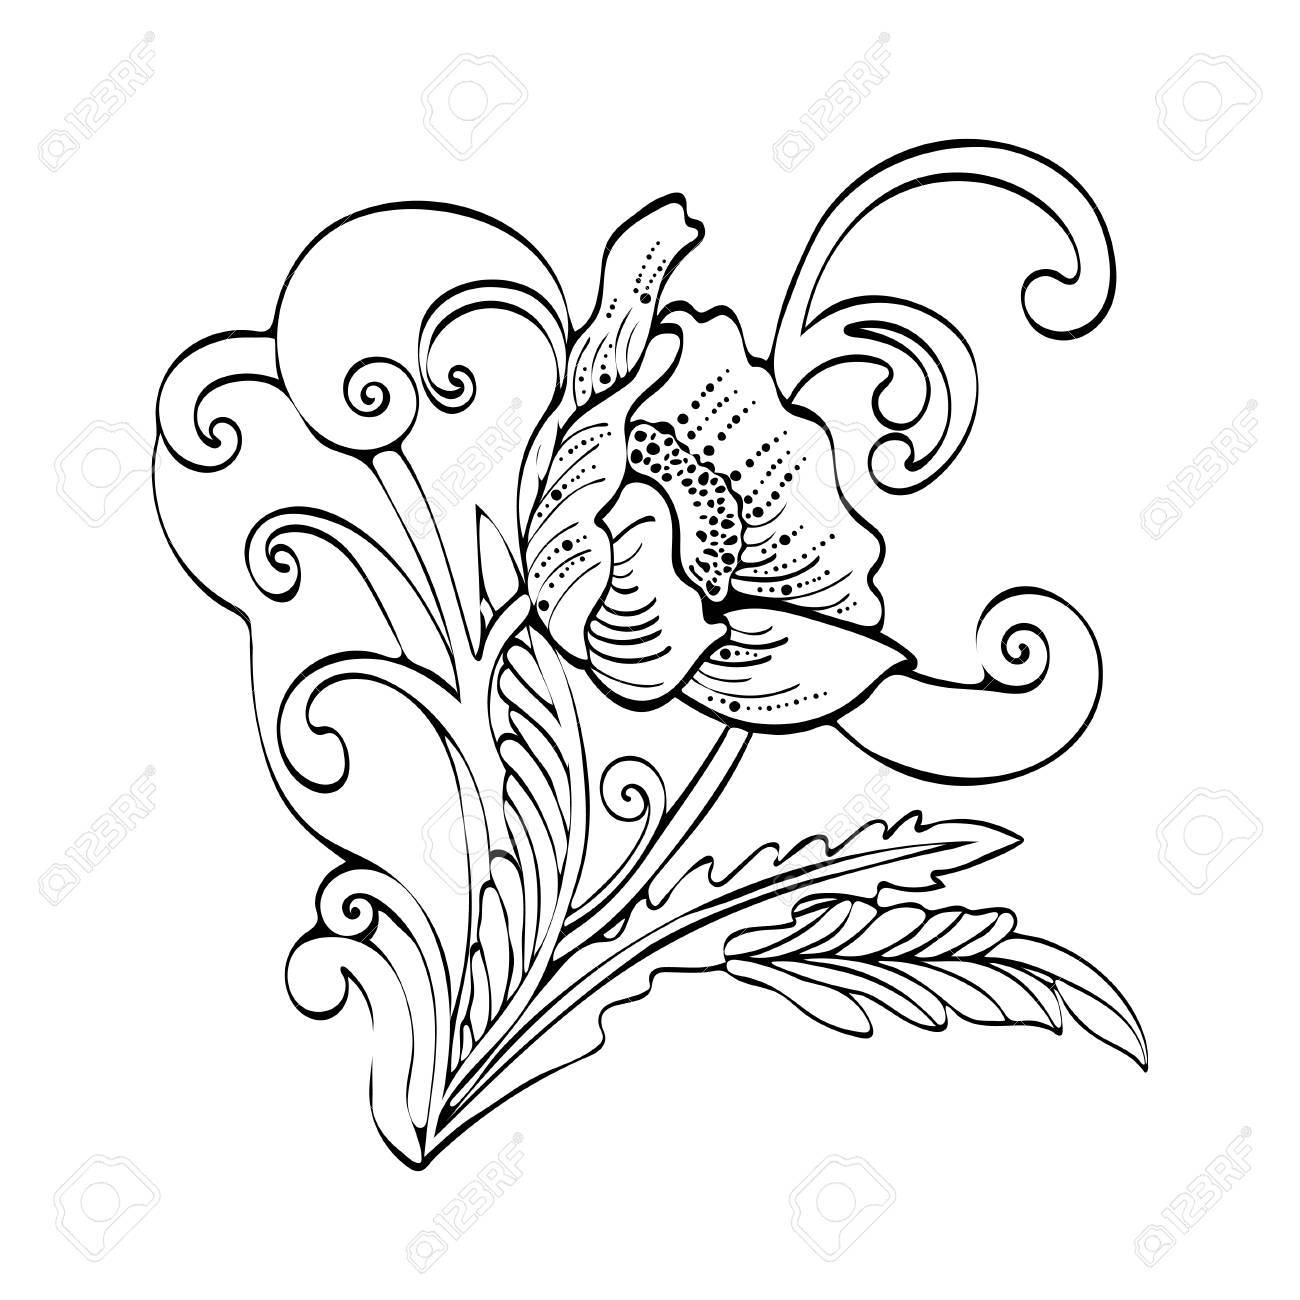 Abstract Flower Cartoon Vector Black And White Contour Hand Drawn